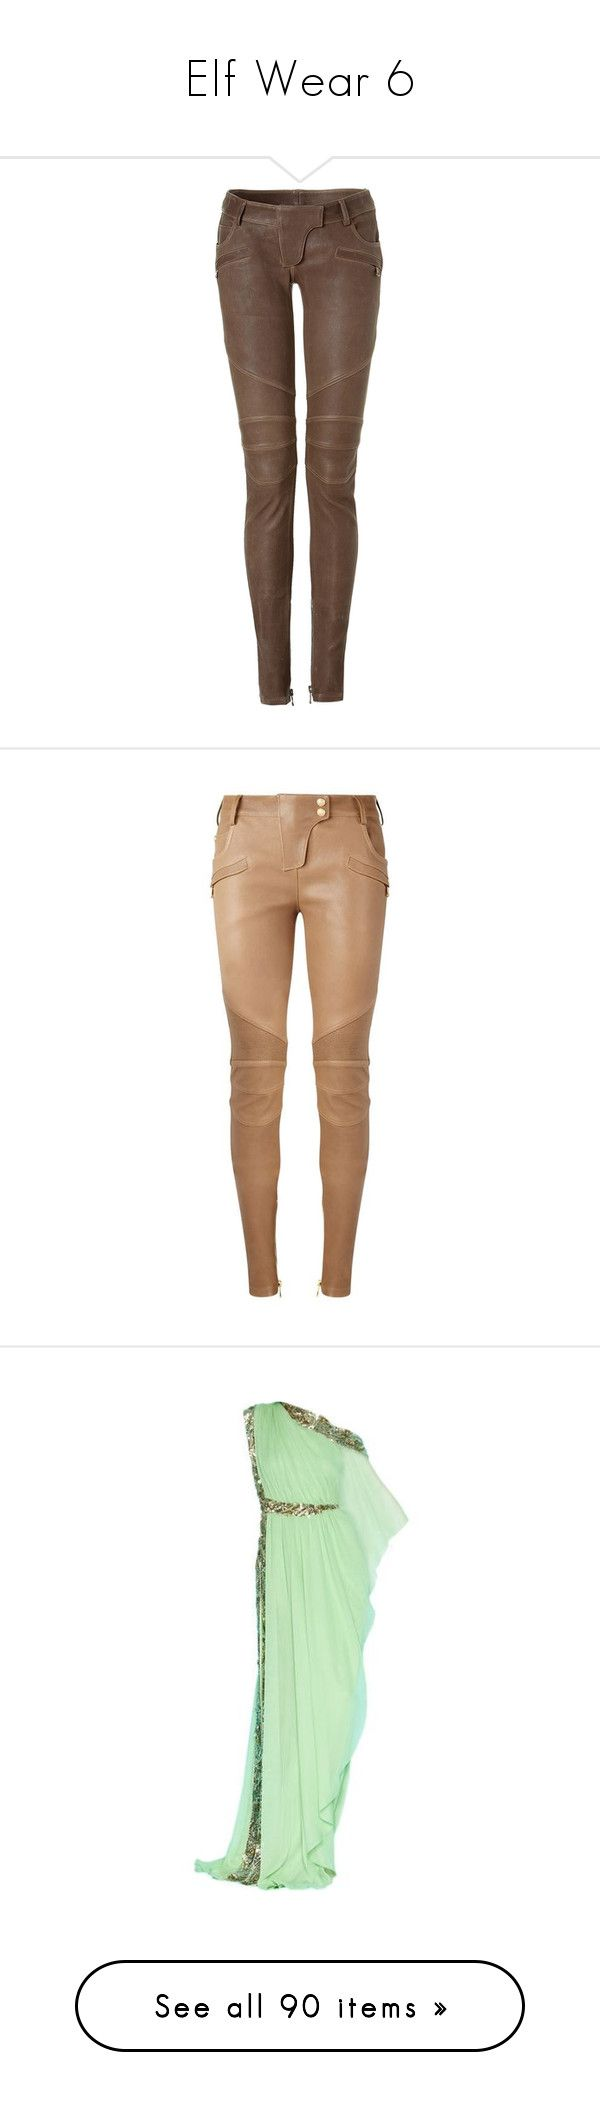 """Elf Wear 6"" by summersurf2014 ❤ liked on Polyvore featuring pants, bottoms, jeans, trousers, leather motorcycle pants, zipper pocket pants, low rise pants, cropped leather pants, low rise leather pants and balmain"